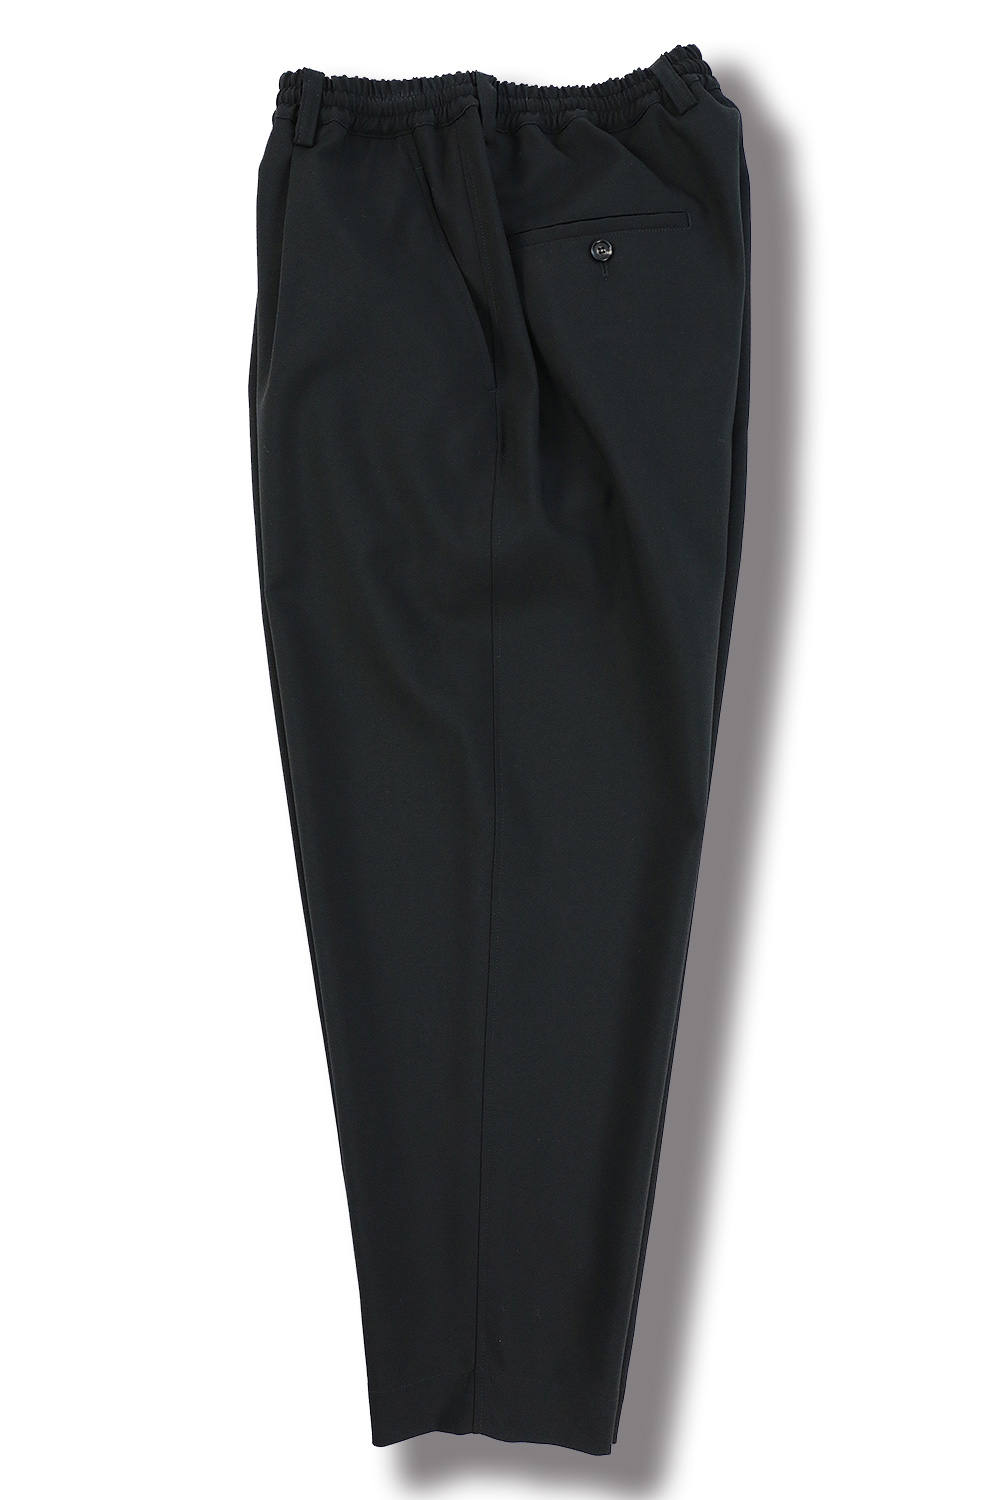 TROPICAL WOOL CROPPRED PANTS(BLACK)